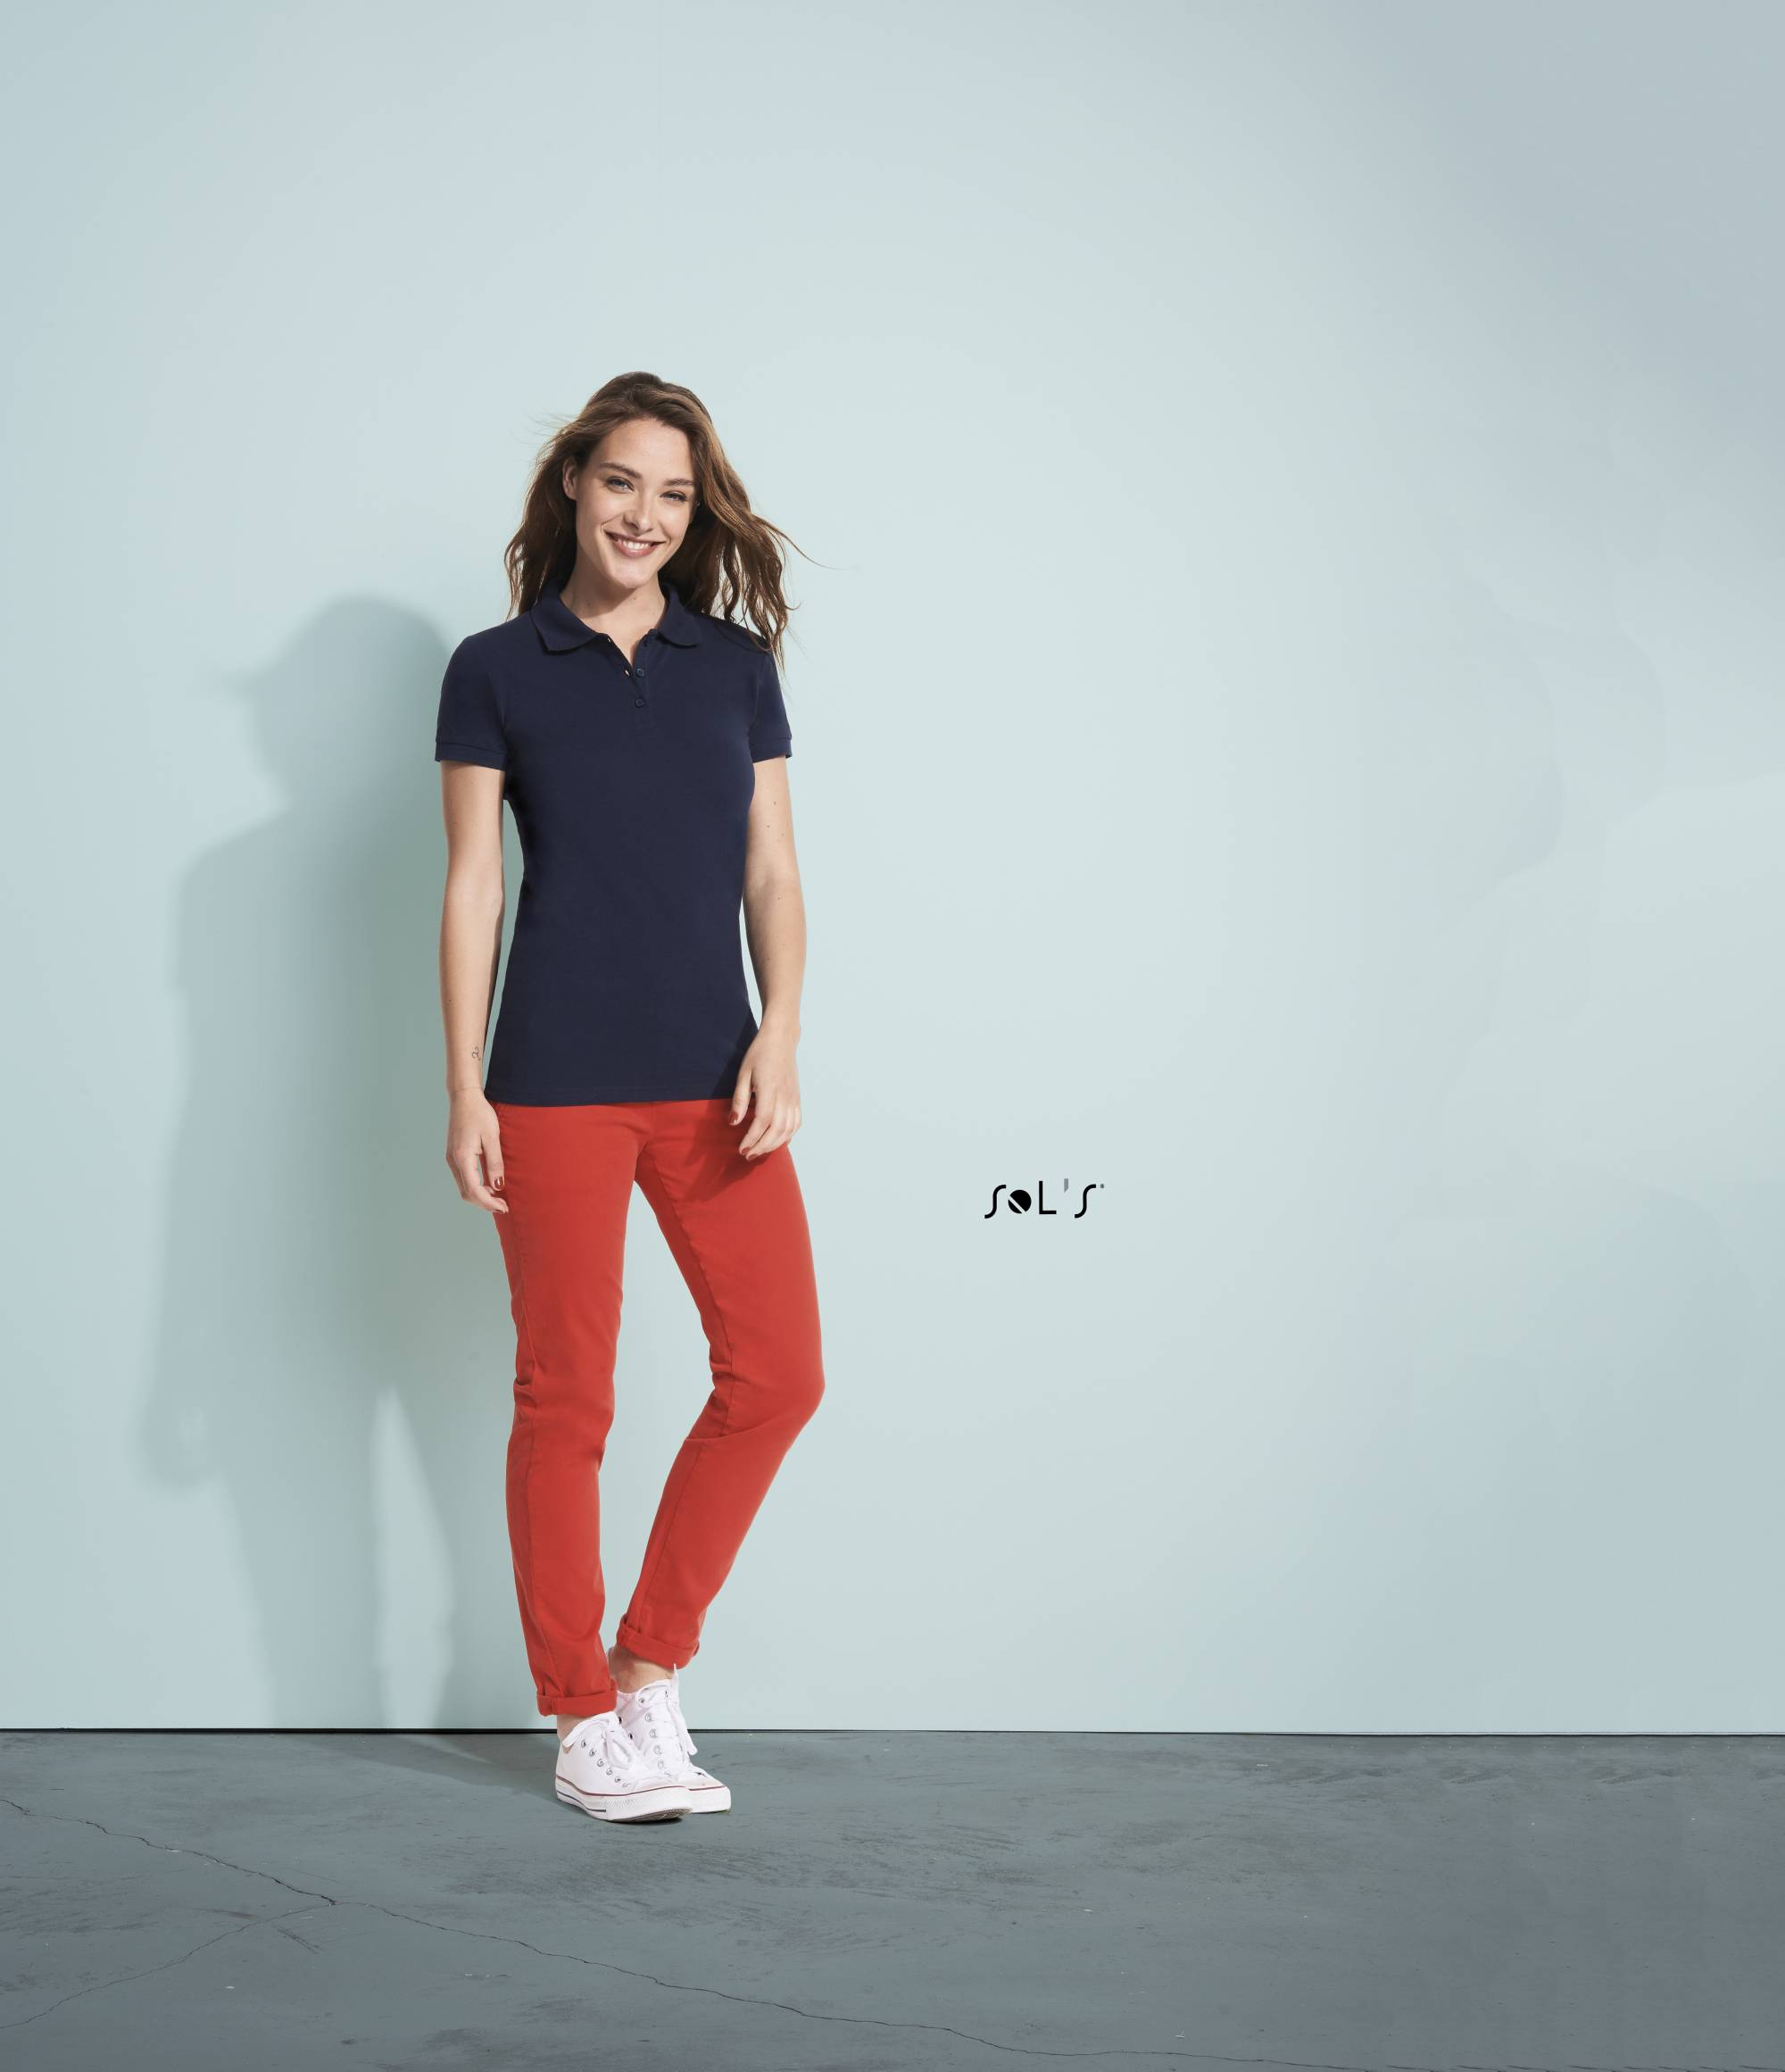 4b9bbe8be952 11342 SUMMER  II product product product product product product product product product product product product product produc.  11347 PERFECT WOMEN